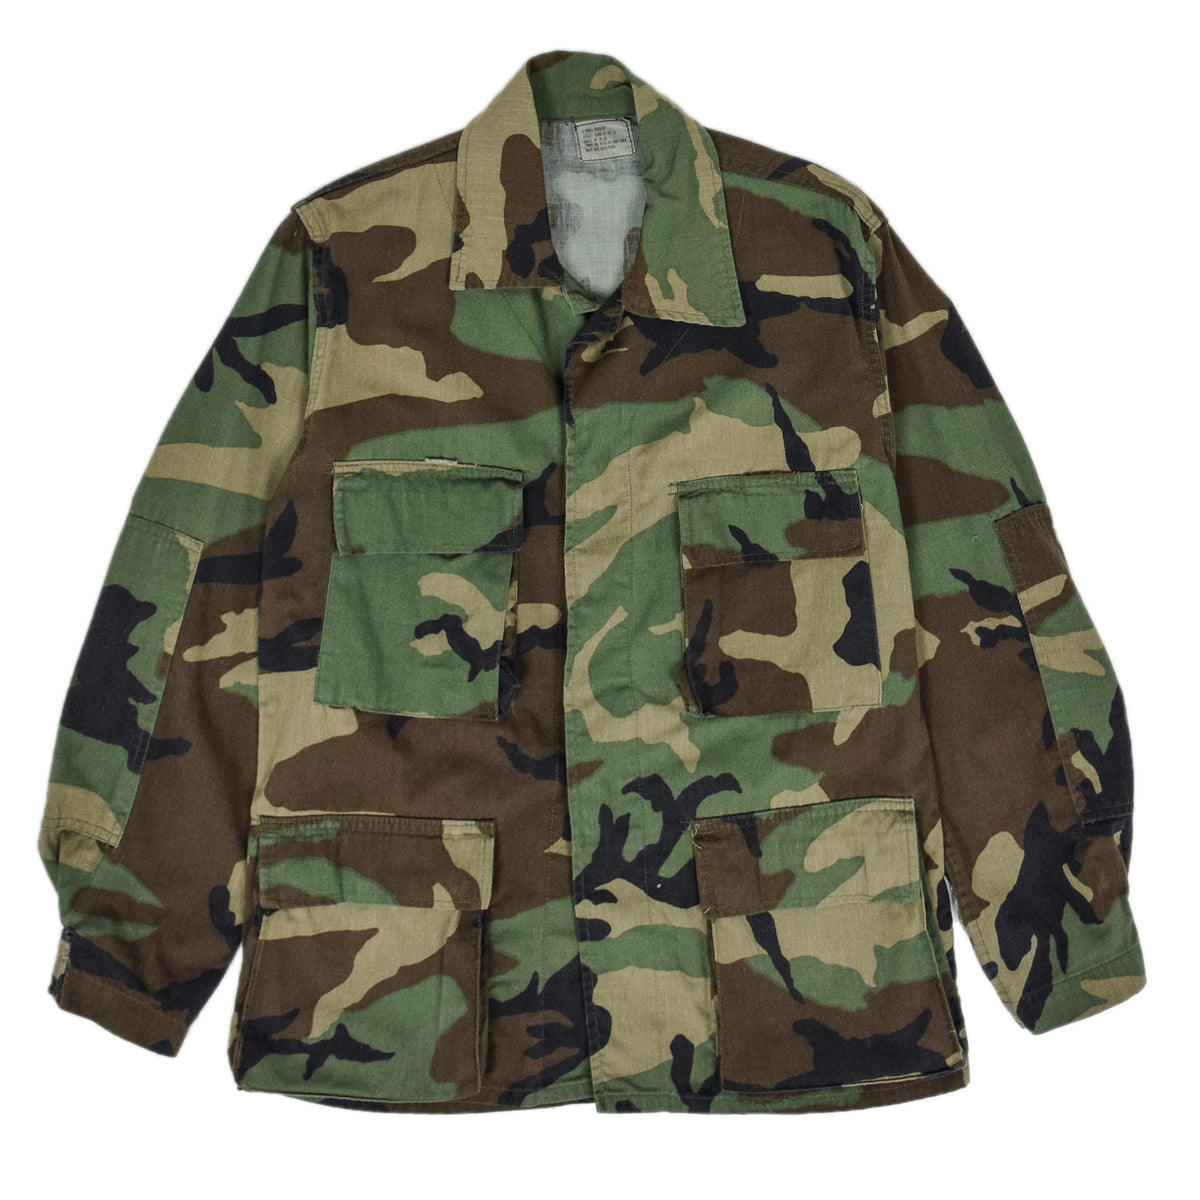 Vintage US Army Woodland Camouflage Combat Coat Field Jacket XS  FRONT